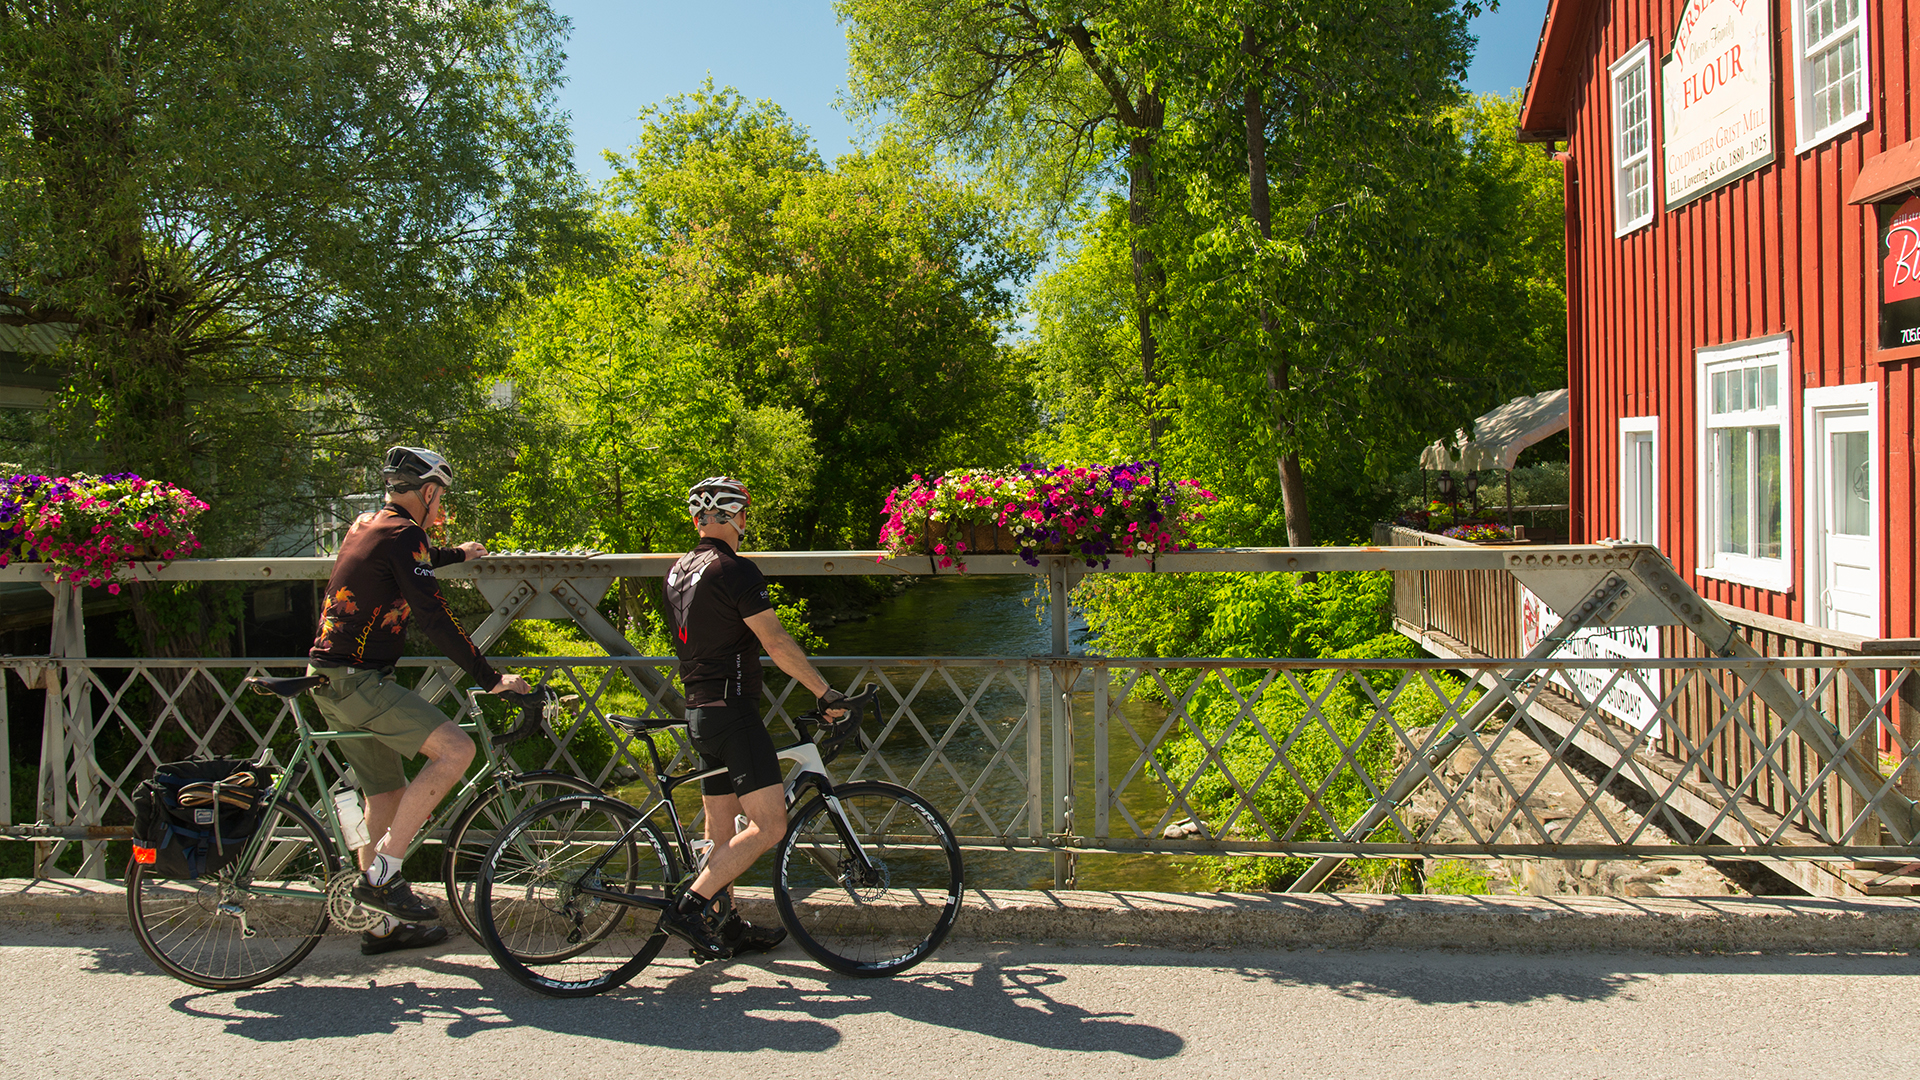 coldwater - Cycle through Ontario's beautiful scenery